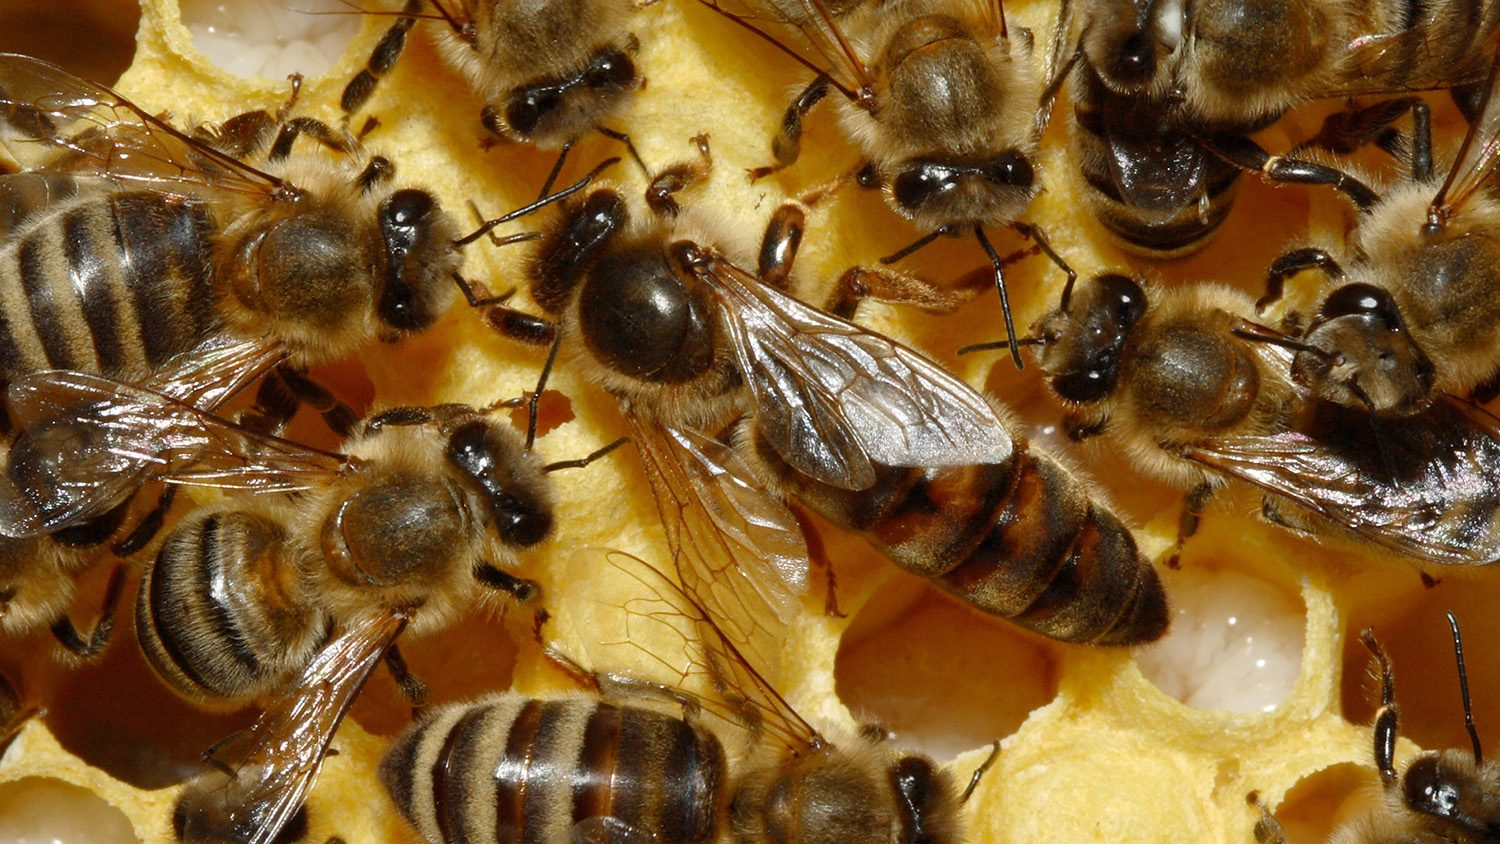 Queen bee surrounded by her other bees in her colony.